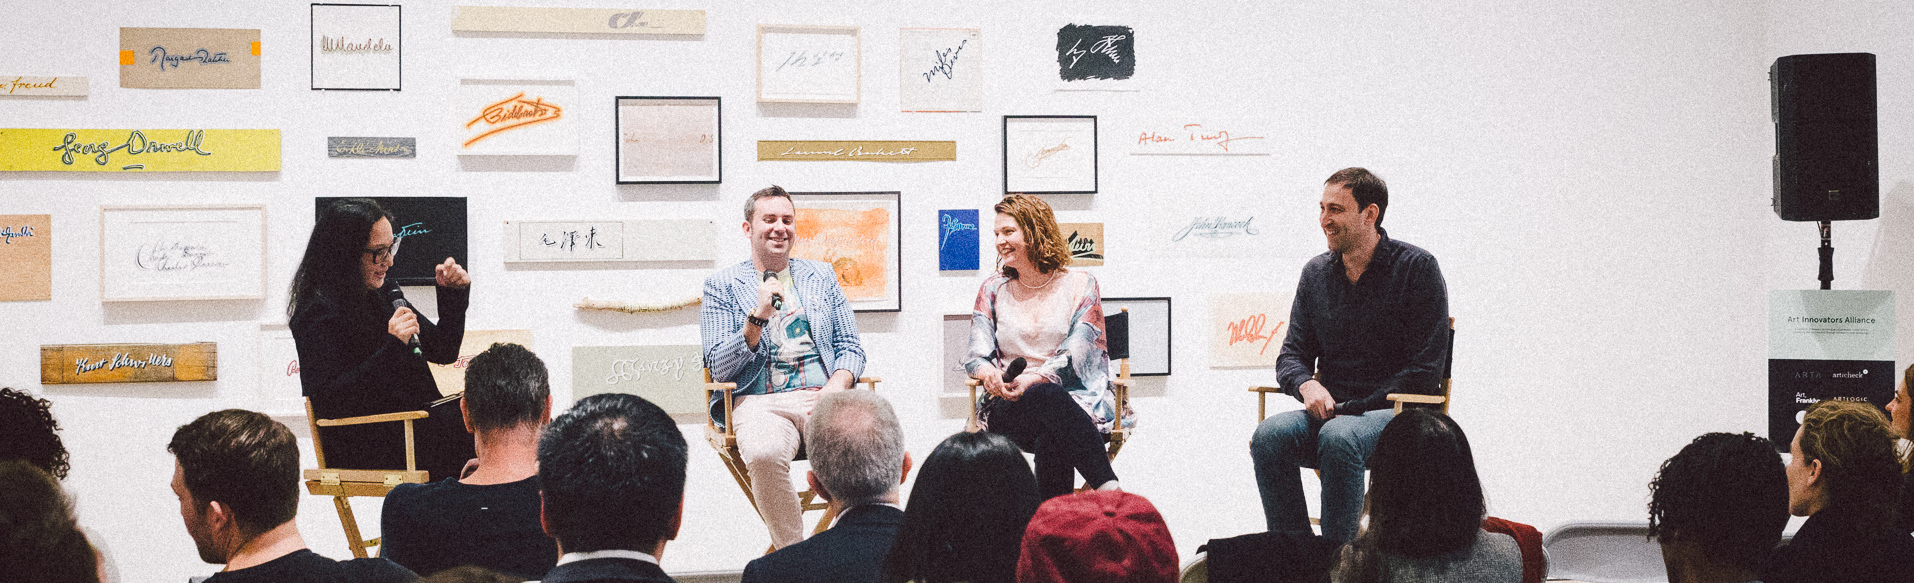 Event Recap: Art Innovators Alliance,